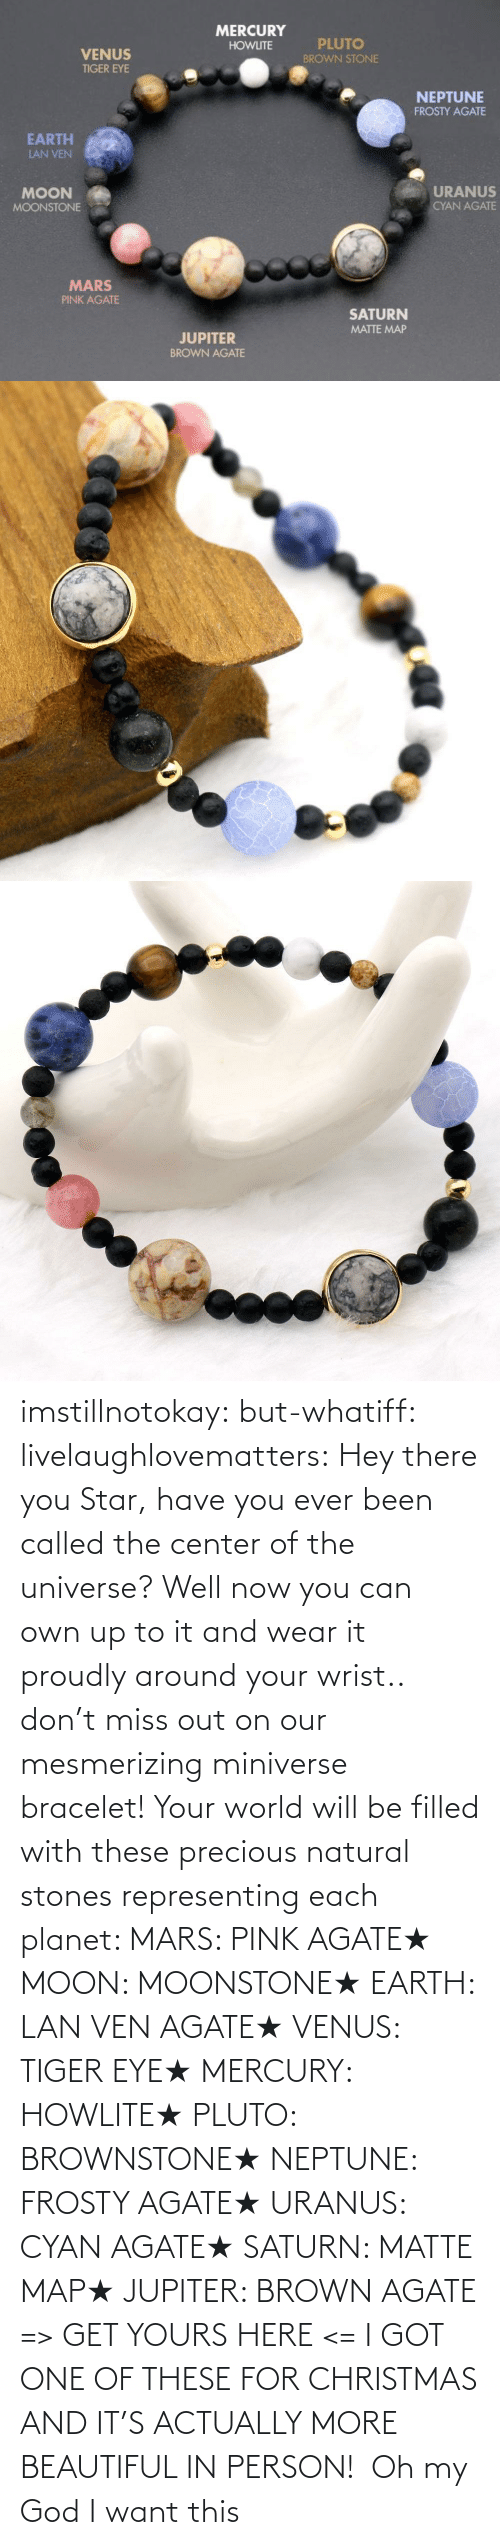 Oh: imstillnotokay:  but-whatiff: livelaughlovematters:  Hey there you Star, have you ever been called the center of the universe? Well now you can own up to it and wear it proudly around your wrist.. don't miss out on our mesmerizing miniverse bracelet! Your world will be filled with these precious natural stones representing each planet:  MARS: PINK AGATE★ MOON: MOONSTONE★ EARTH: LAN VEN AGATE★ VENUS: TIGER EYE★ MERCURY: HOWLITE★ PLUTO: BROWNSTONE★ NEPTUNE: FROSTY AGATE★ URANUS: CYAN AGATE★ SATURN: MATTE MAP★ JUPITER: BROWN AGATE => GET YOURS HERE <=  I GOT ONE OF THESE FOR CHRISTMAS AND IT'S ACTUALLY MORE BEAUTIFUL IN PERSON!     Oh my God I want this